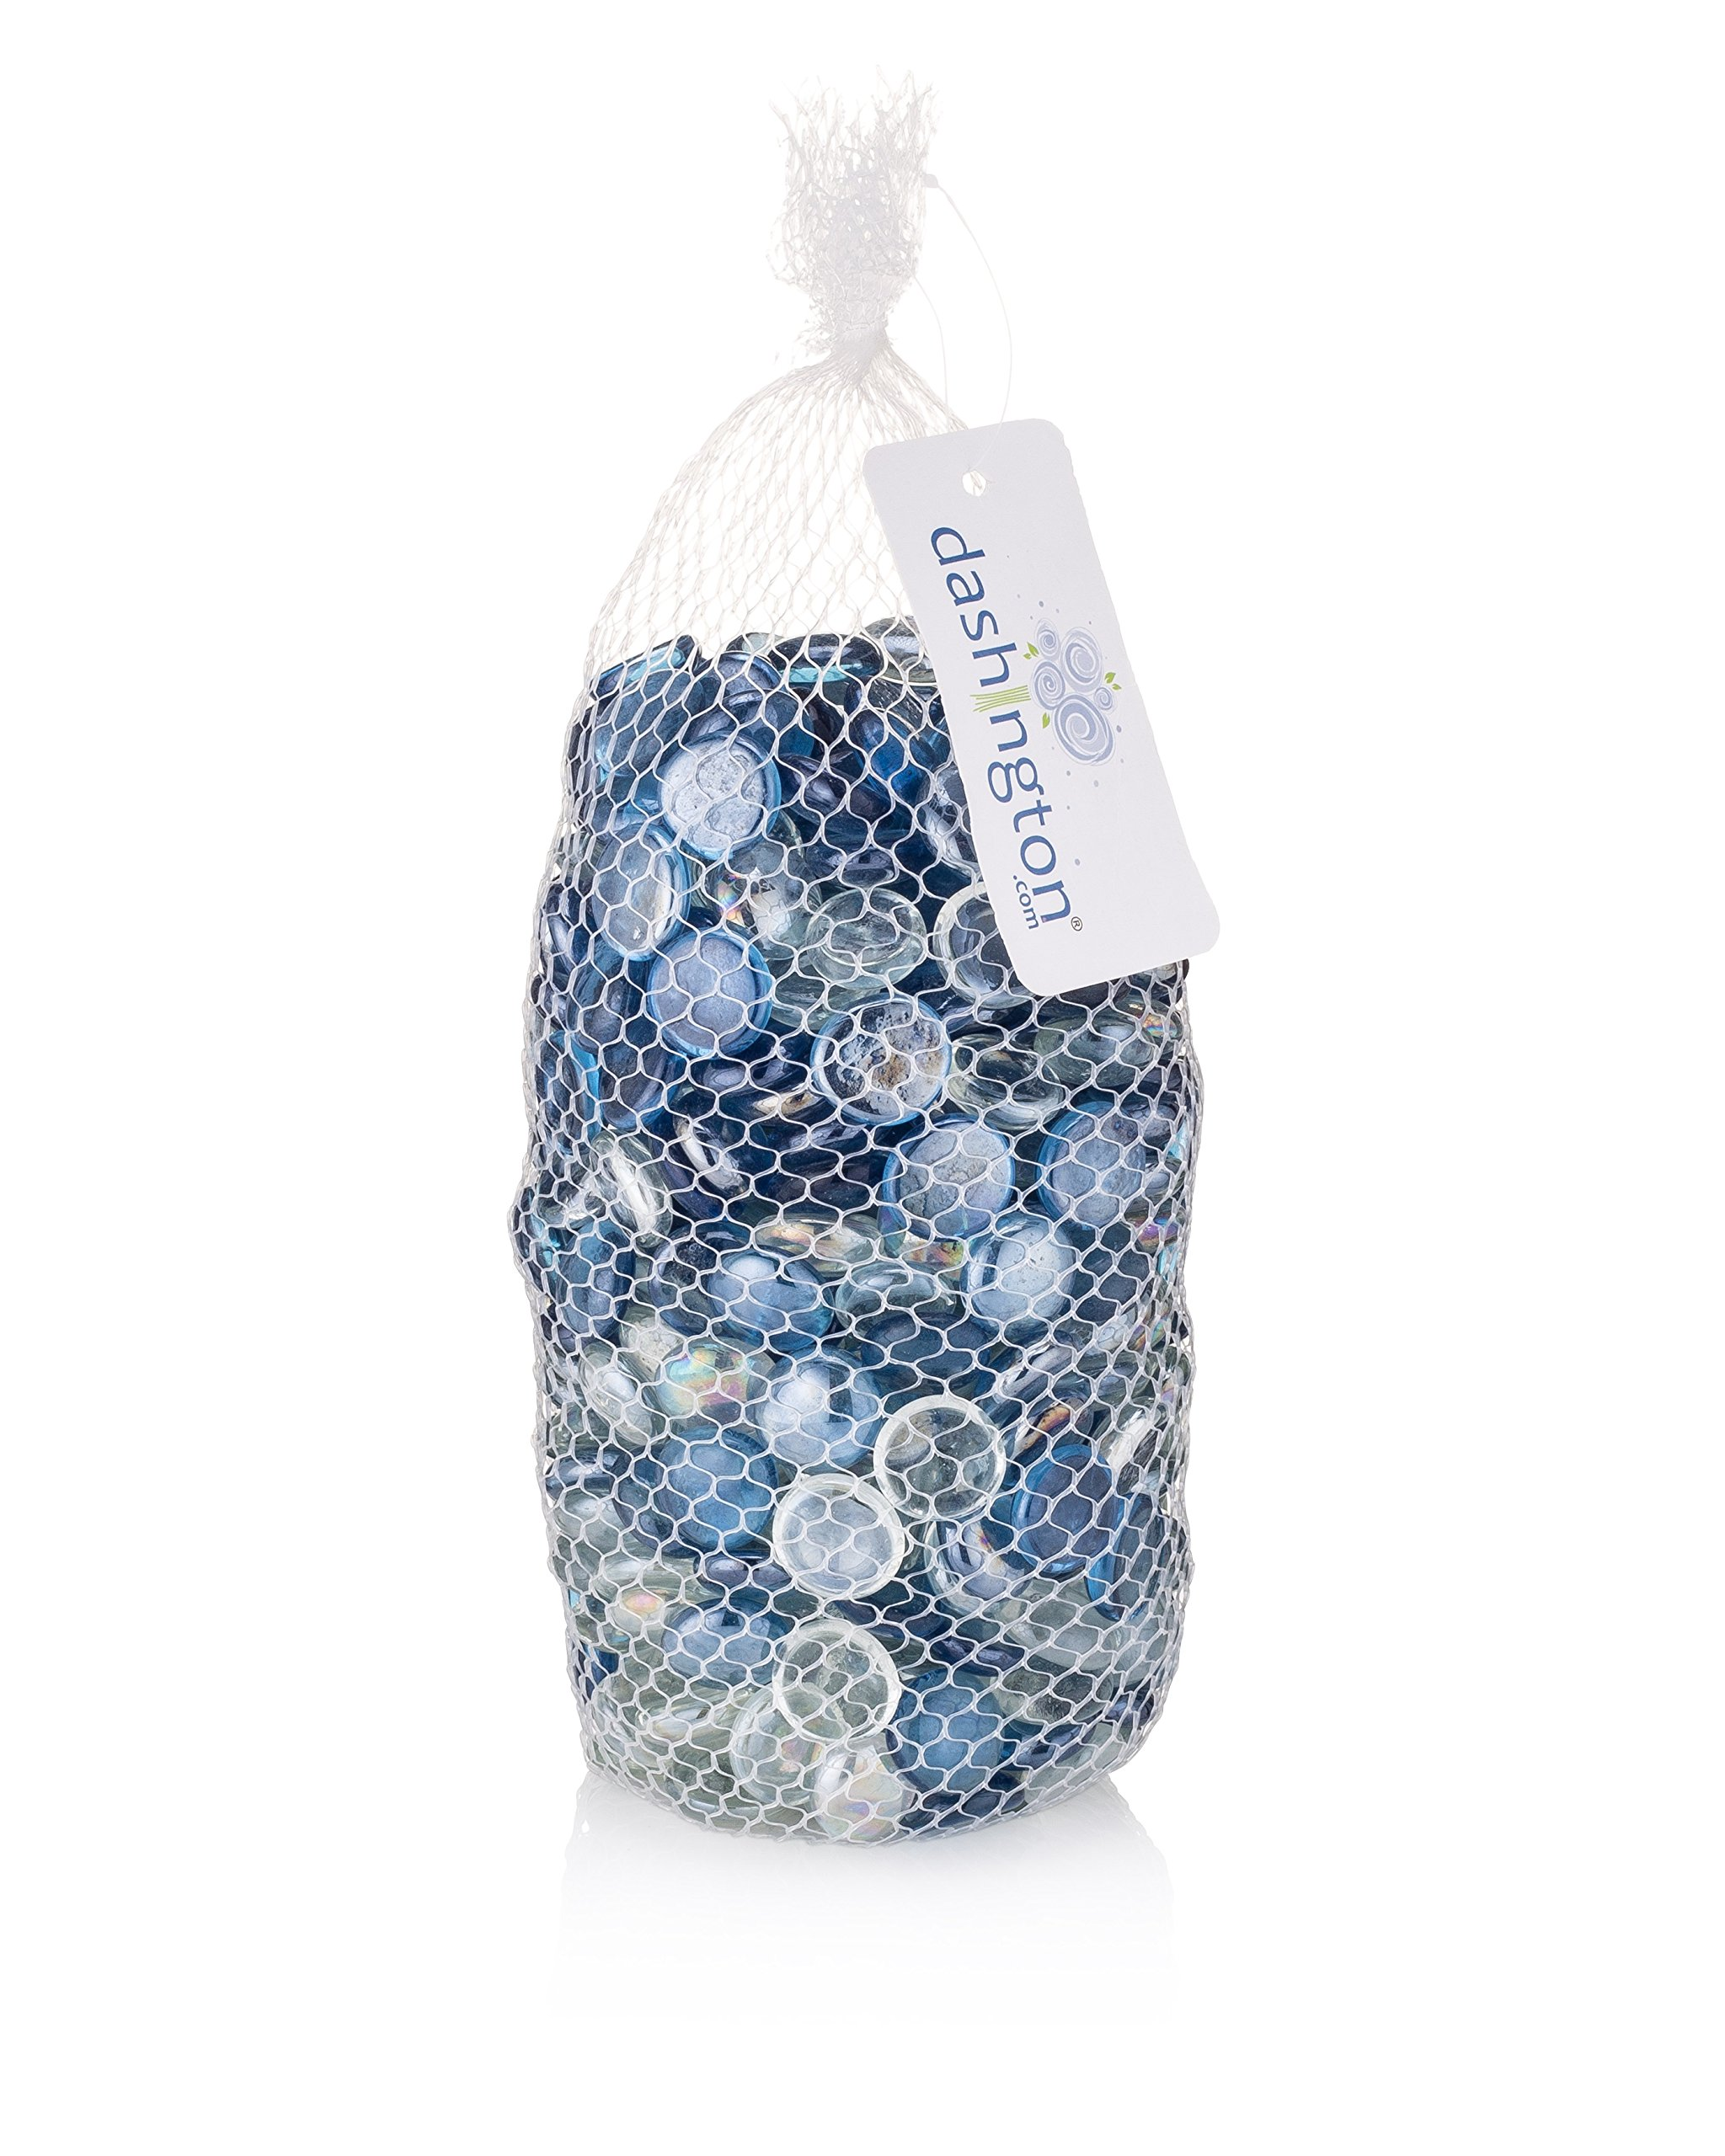 Dashington Flat Blue/Clear Marbles, Pebbles (5 Pound Bag/80oz) for Vase Filler, Table Scatter, Aquarium Decor, Gems